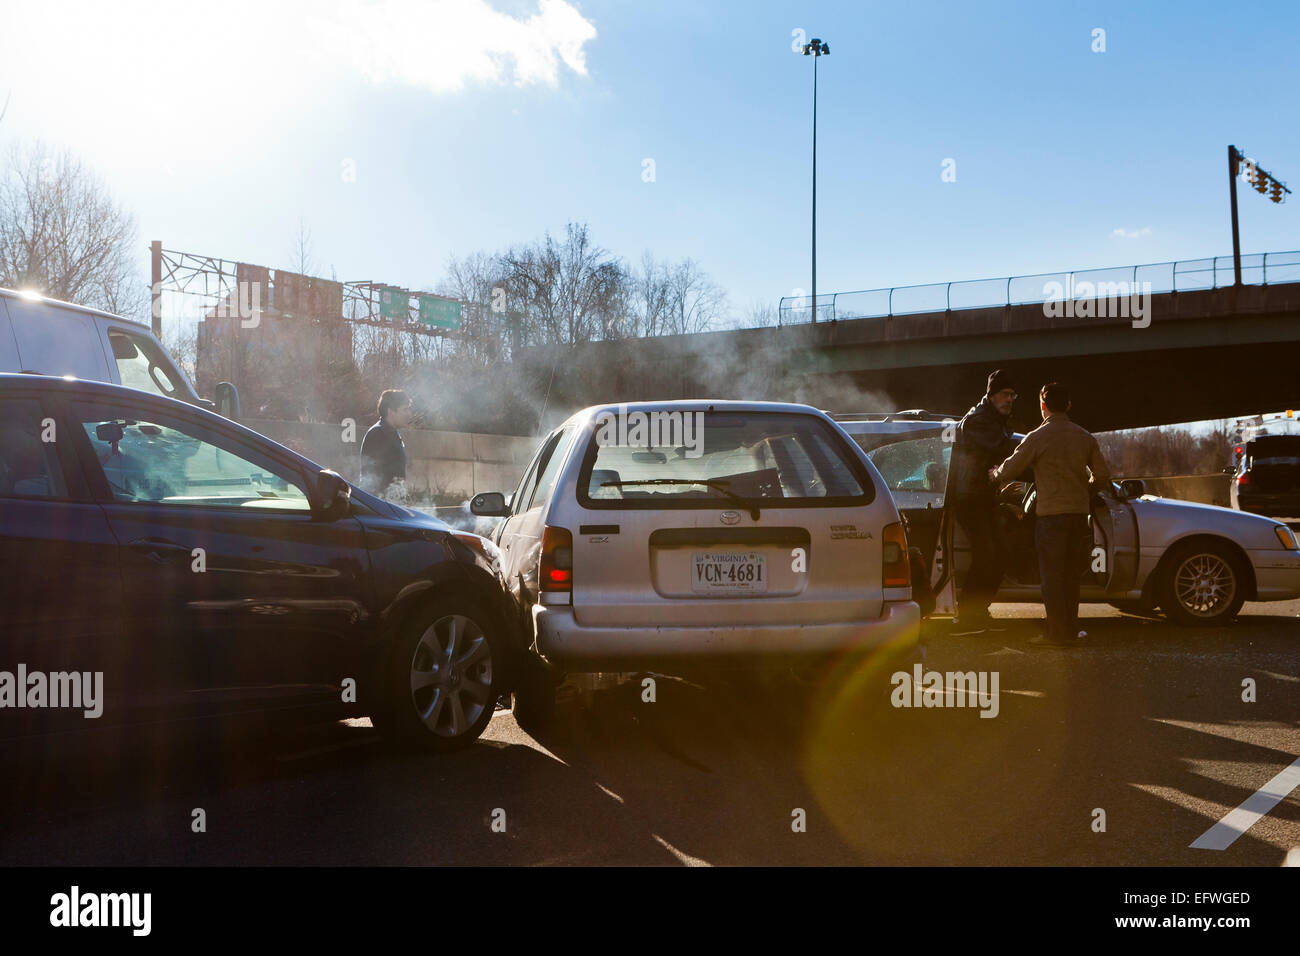 Véhicule multi accident automobile sur route - USA Photo Stock